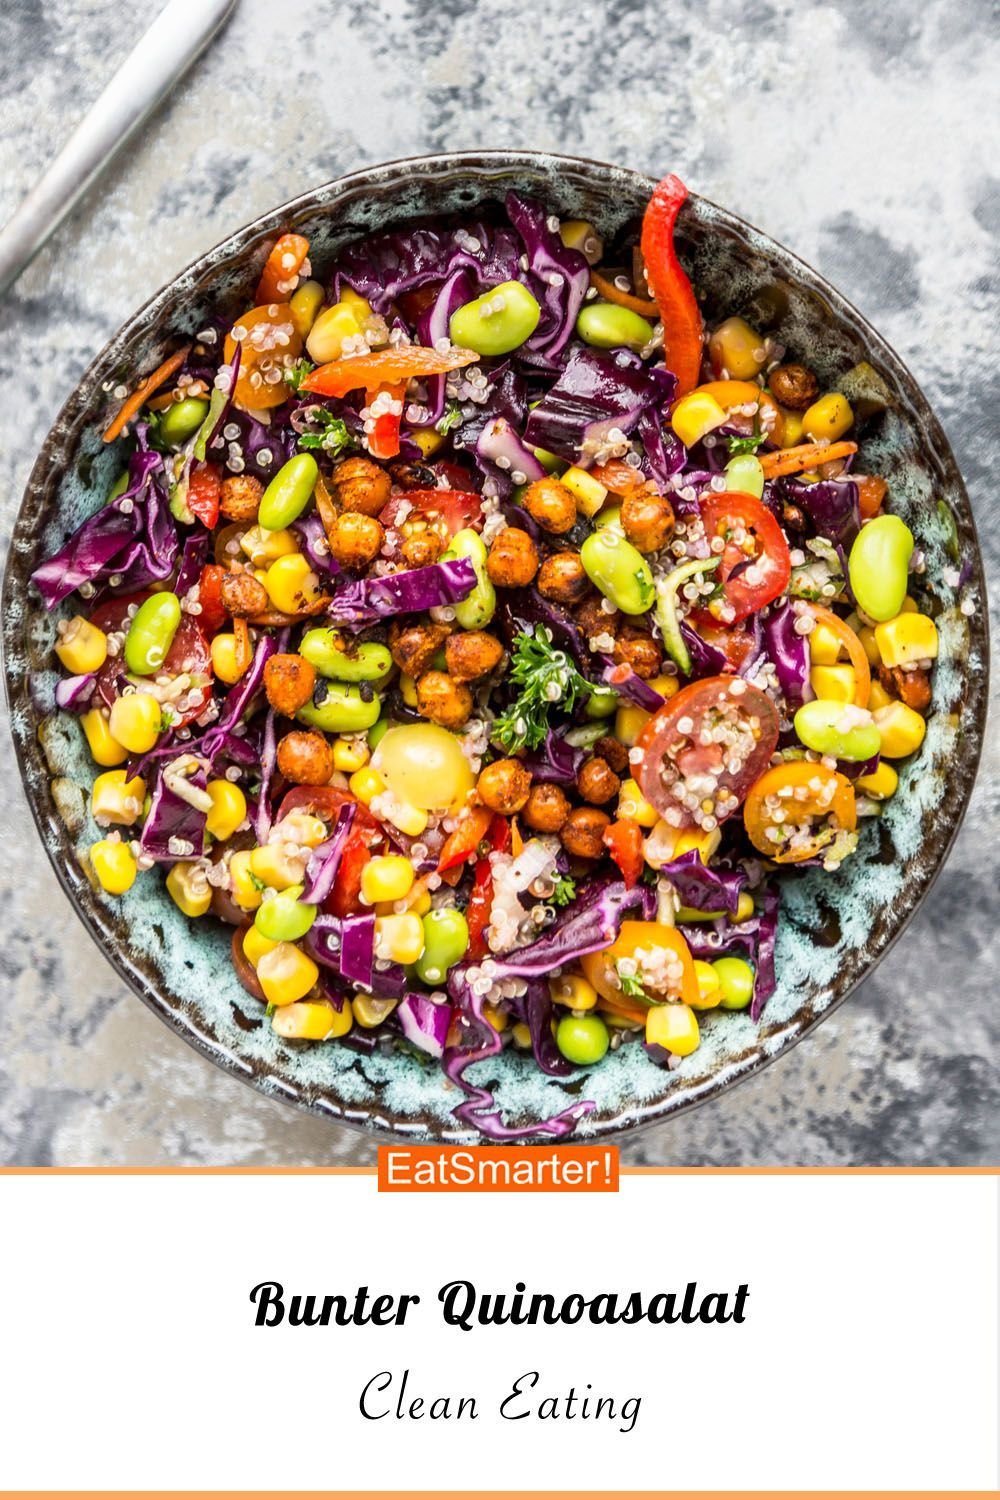 Bunter quinoa salad -  Bunter Quinoa Salad – Smarter – Calories: 523 kcal – Time: 35 Min. |